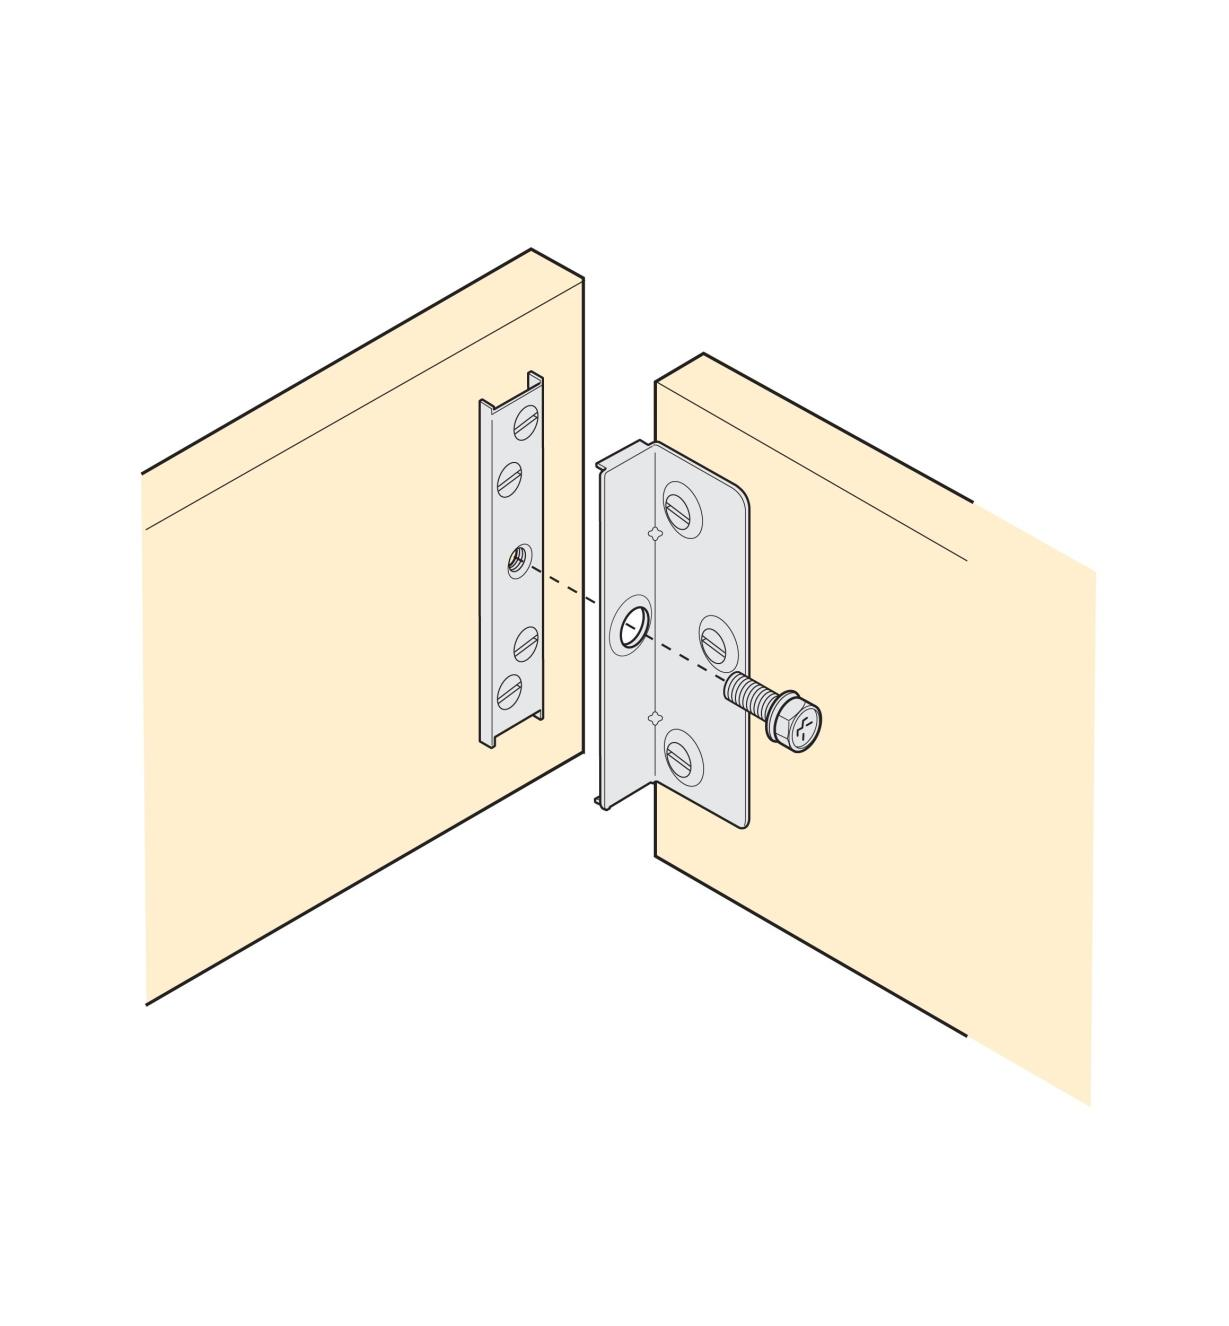 Illustration shows how to install Low-Profile Brackets